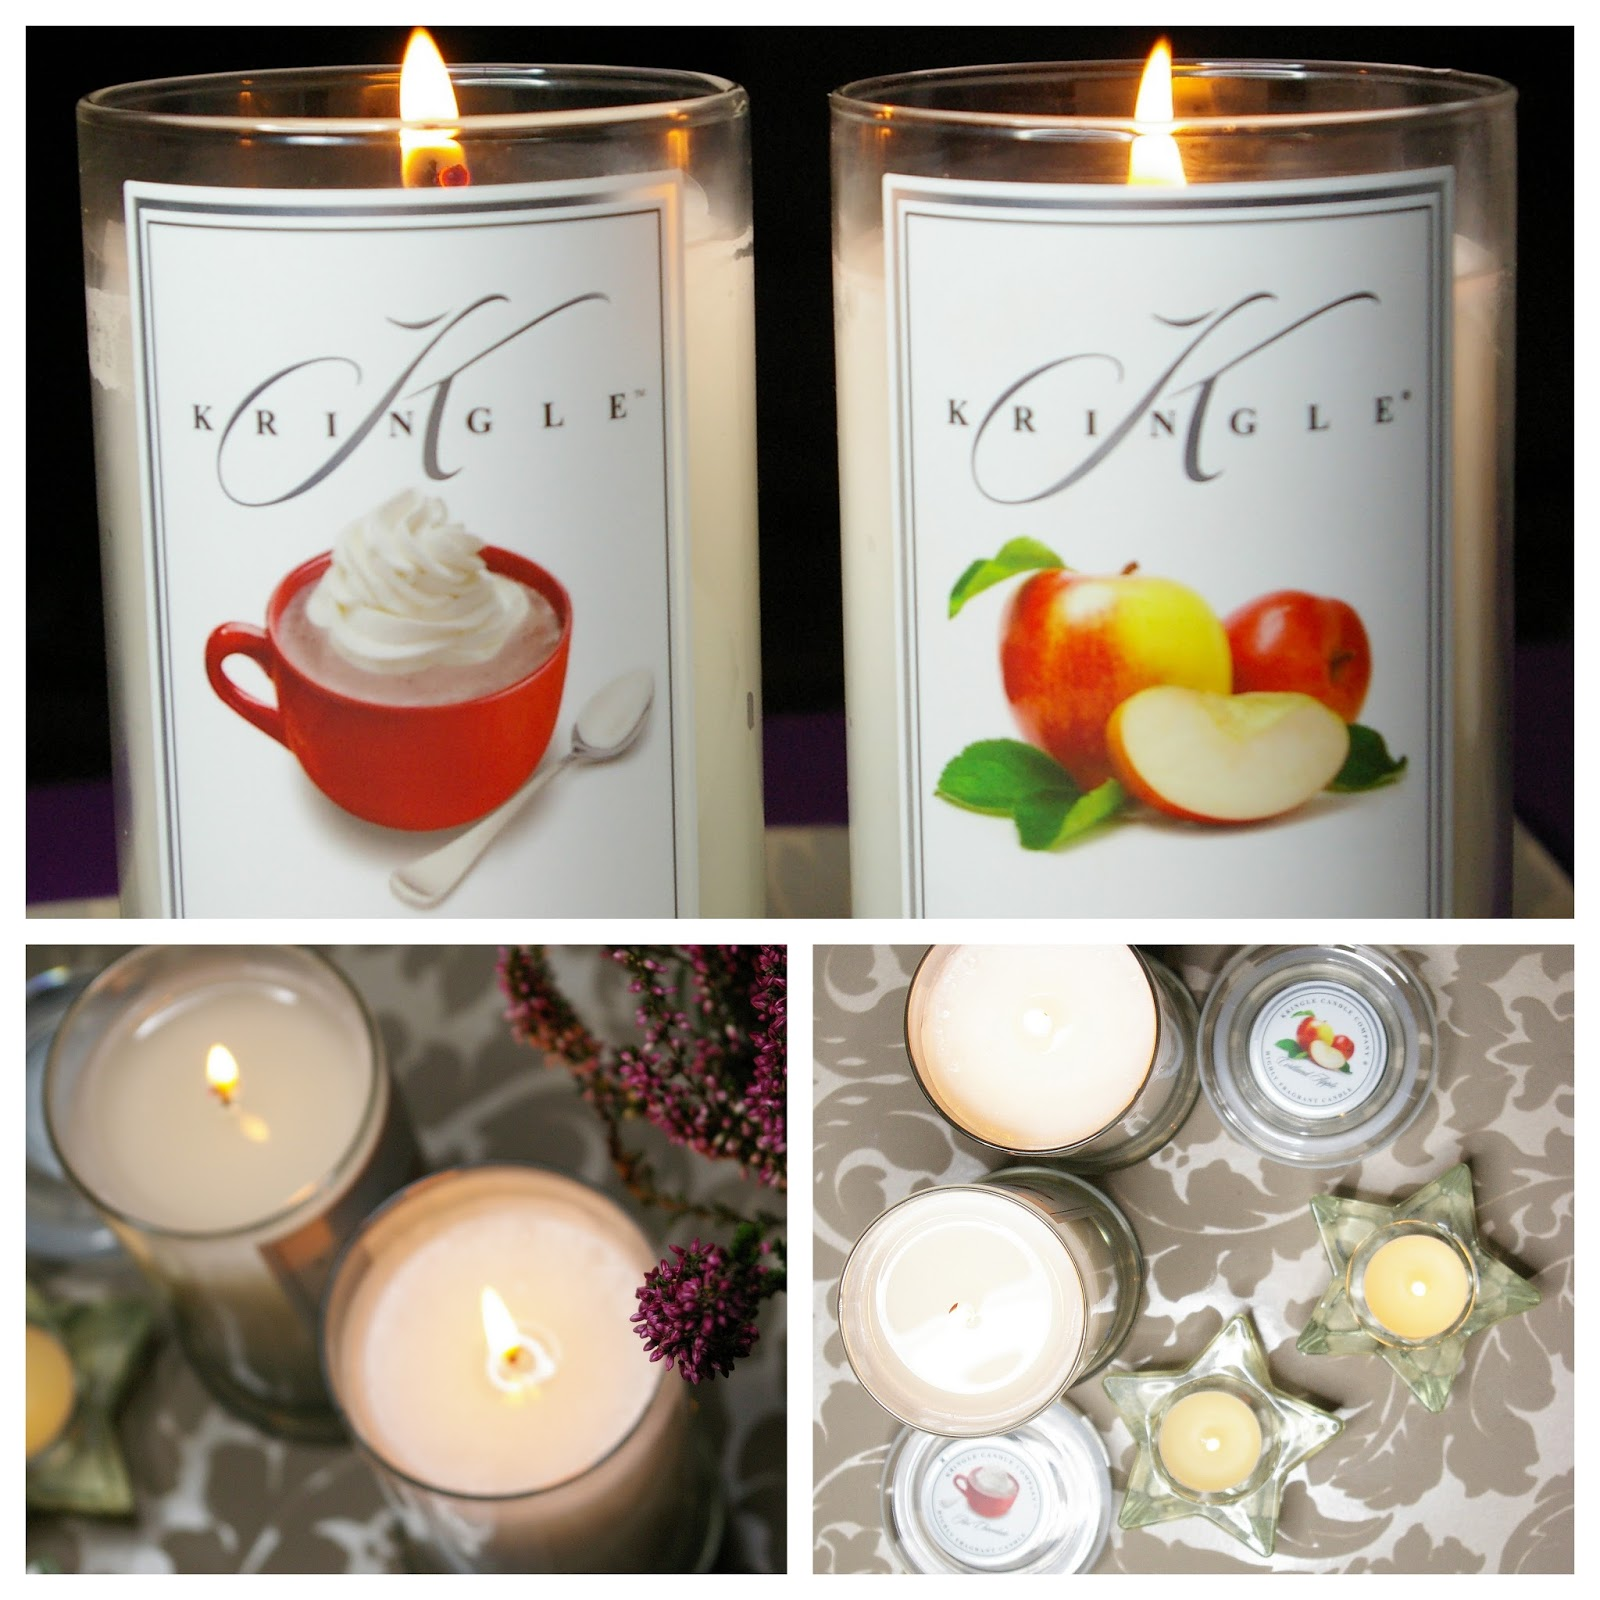 Lifestyle, home design,  świece zapachowe, woski zapachowe, Yankee Candle, kringle candle, kia candles,